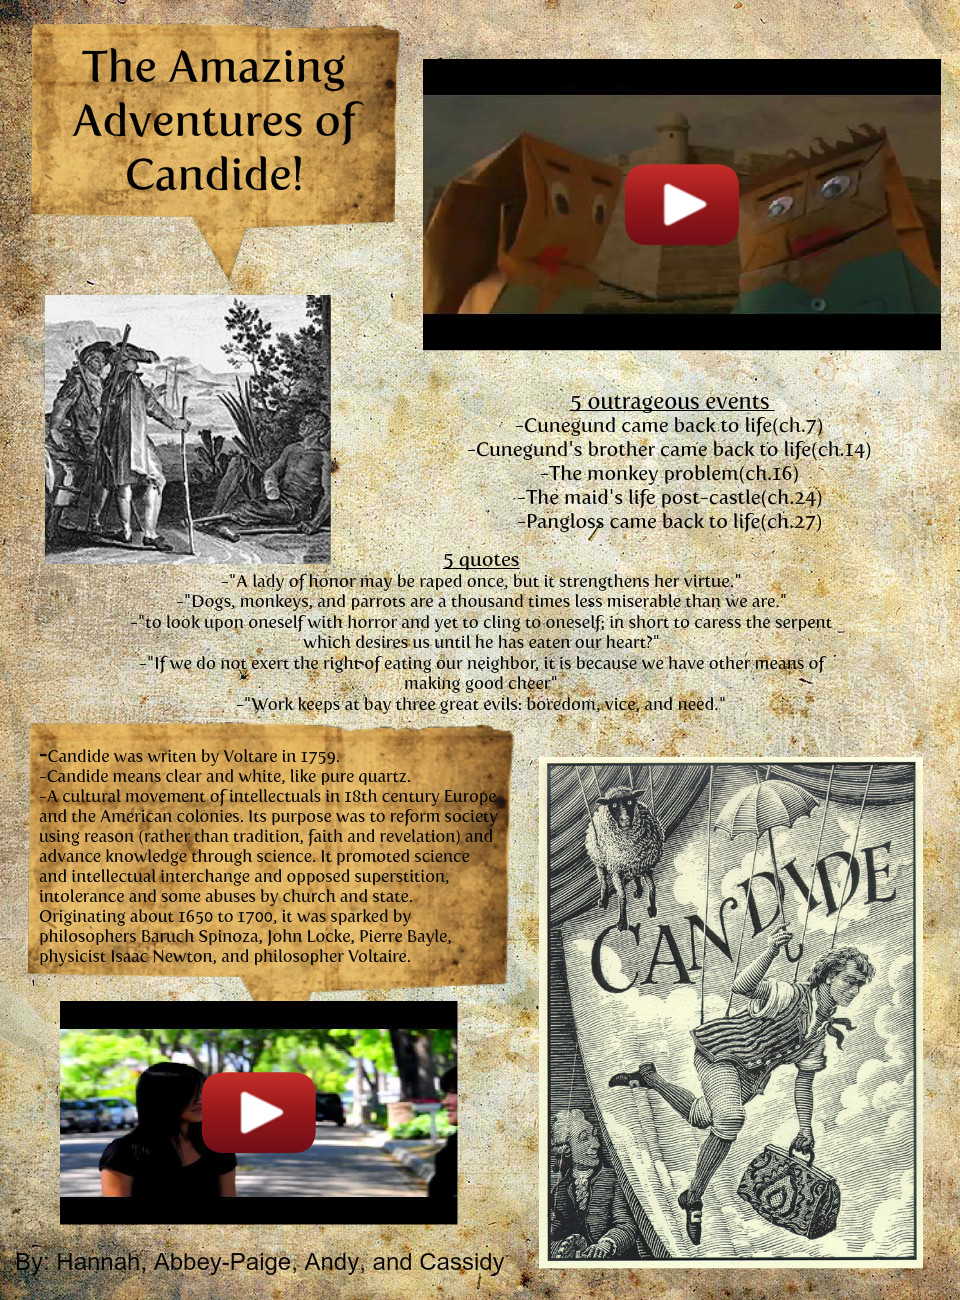 The Amazing Adventures of Candide